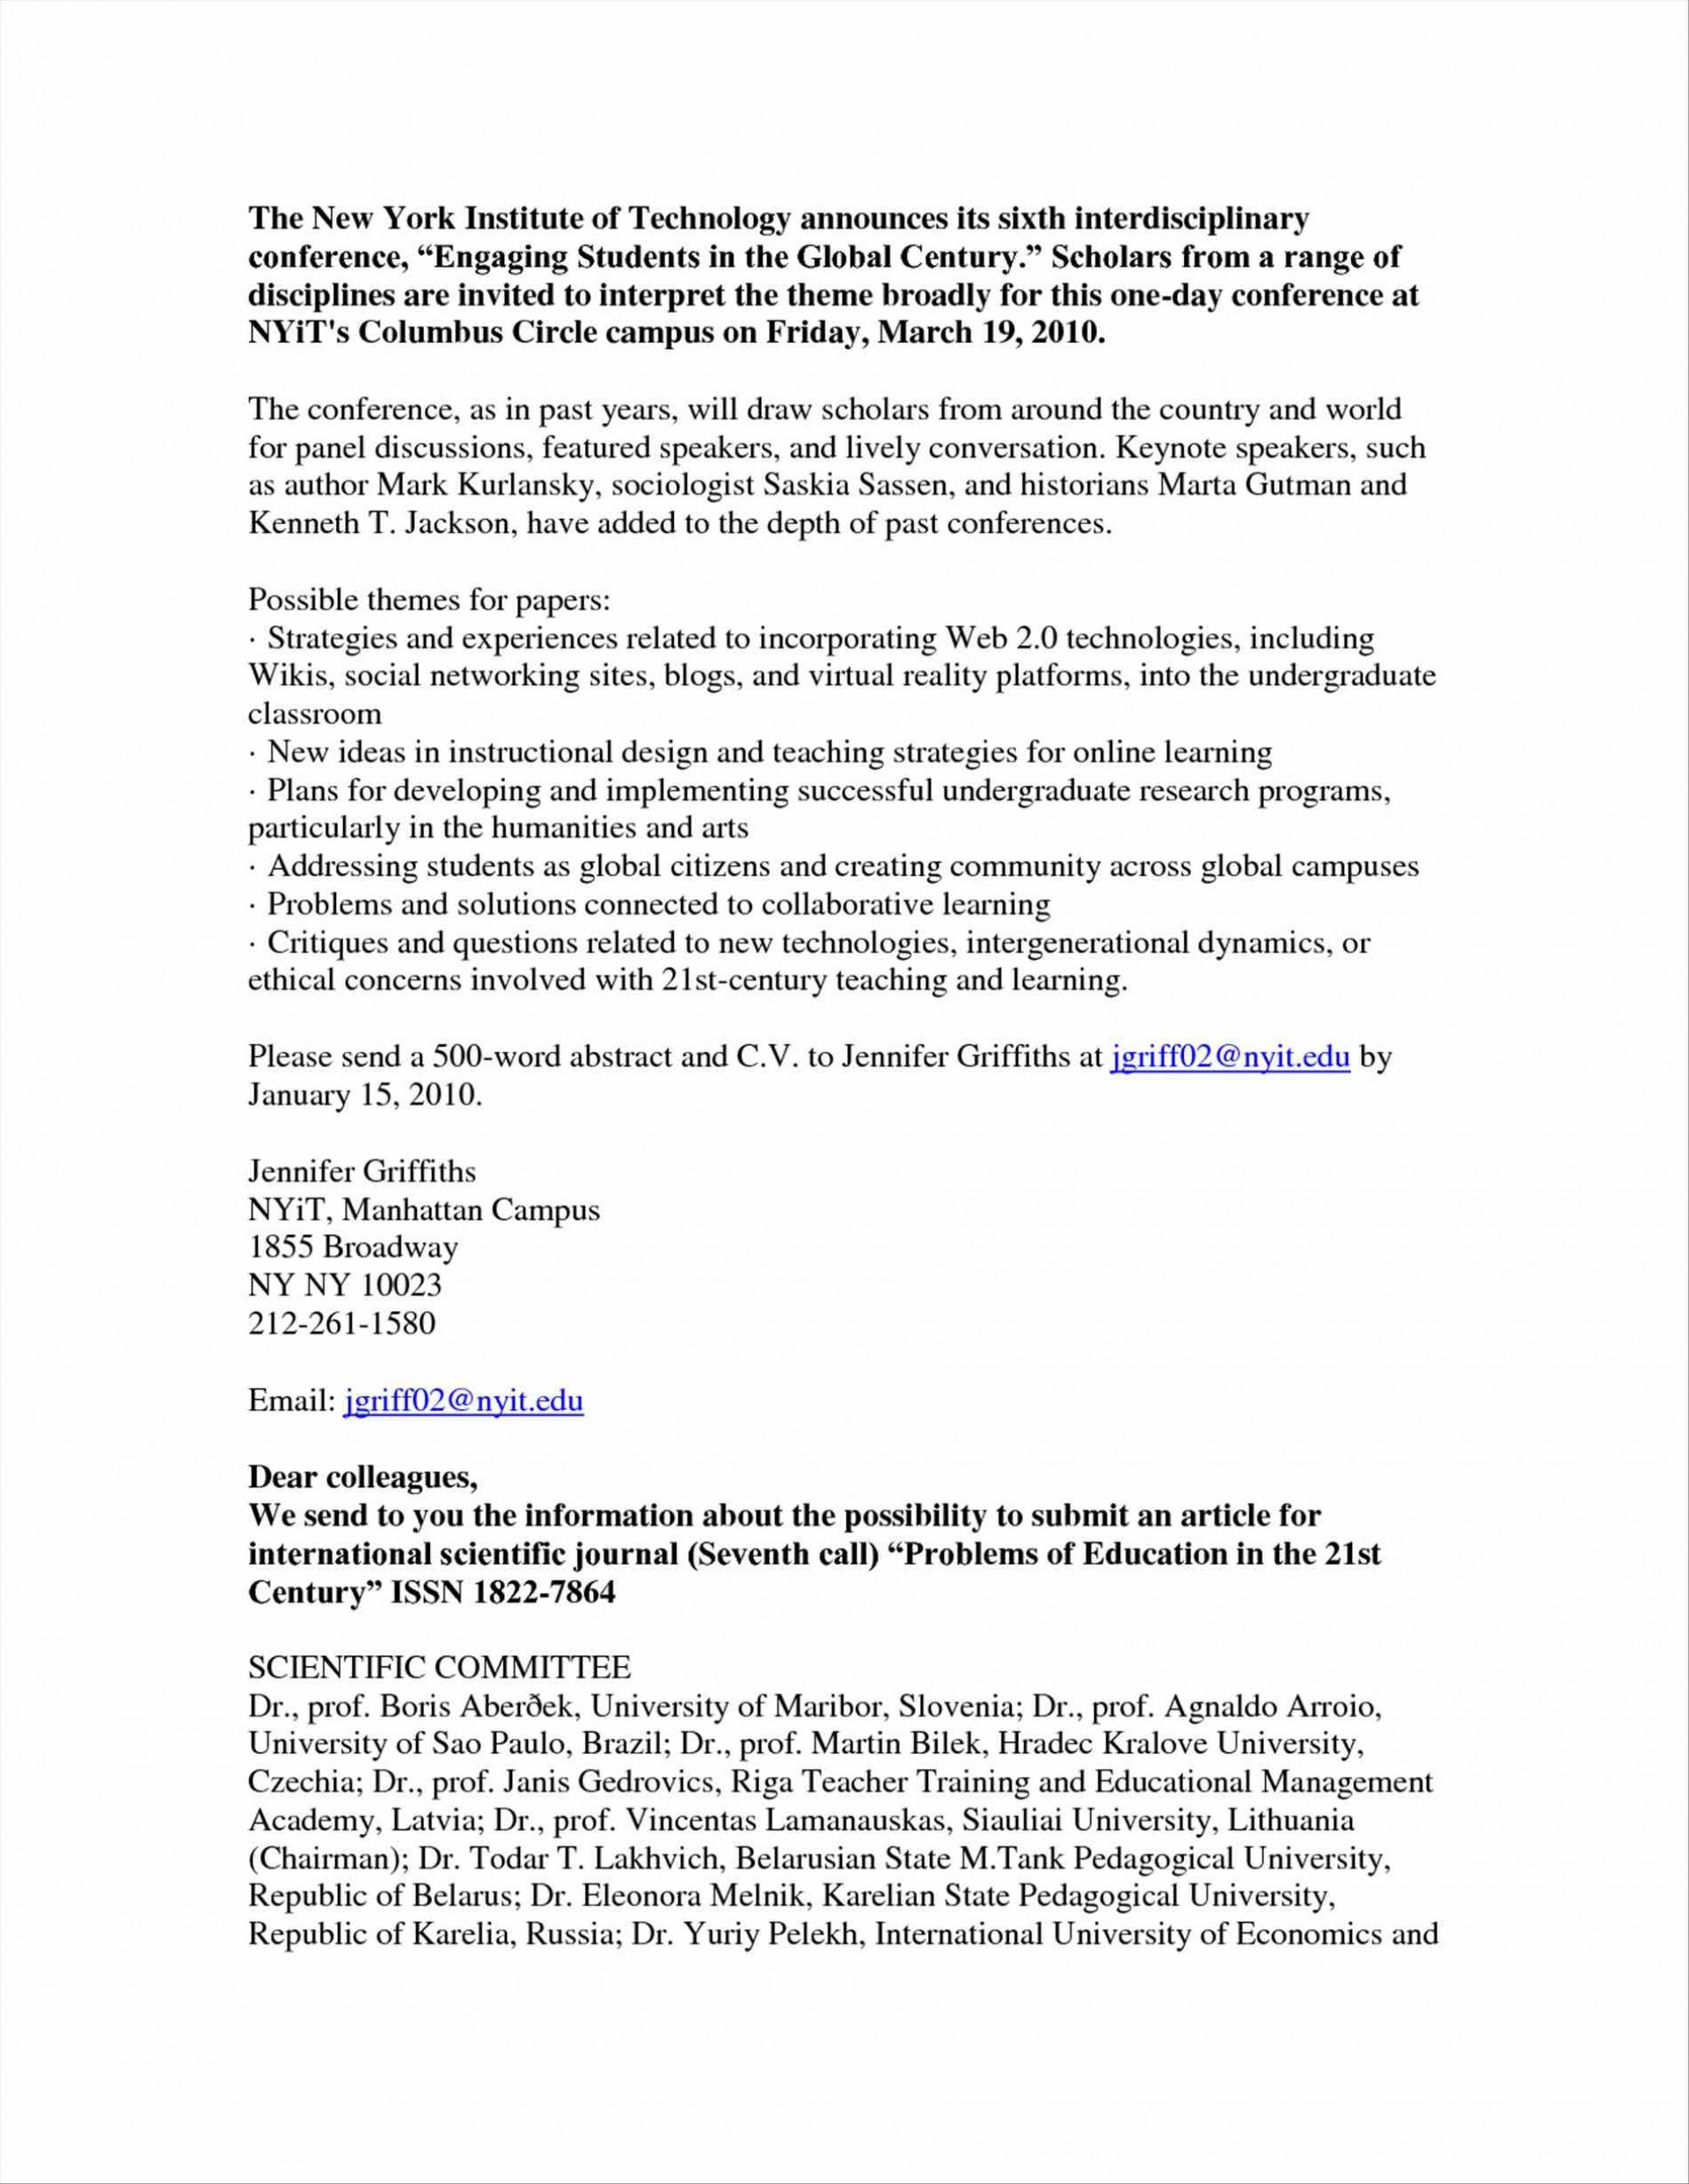 008 Apa Style Research Paper Template Format Soap An Example Of L How To Write Outline Sensational A In 1920